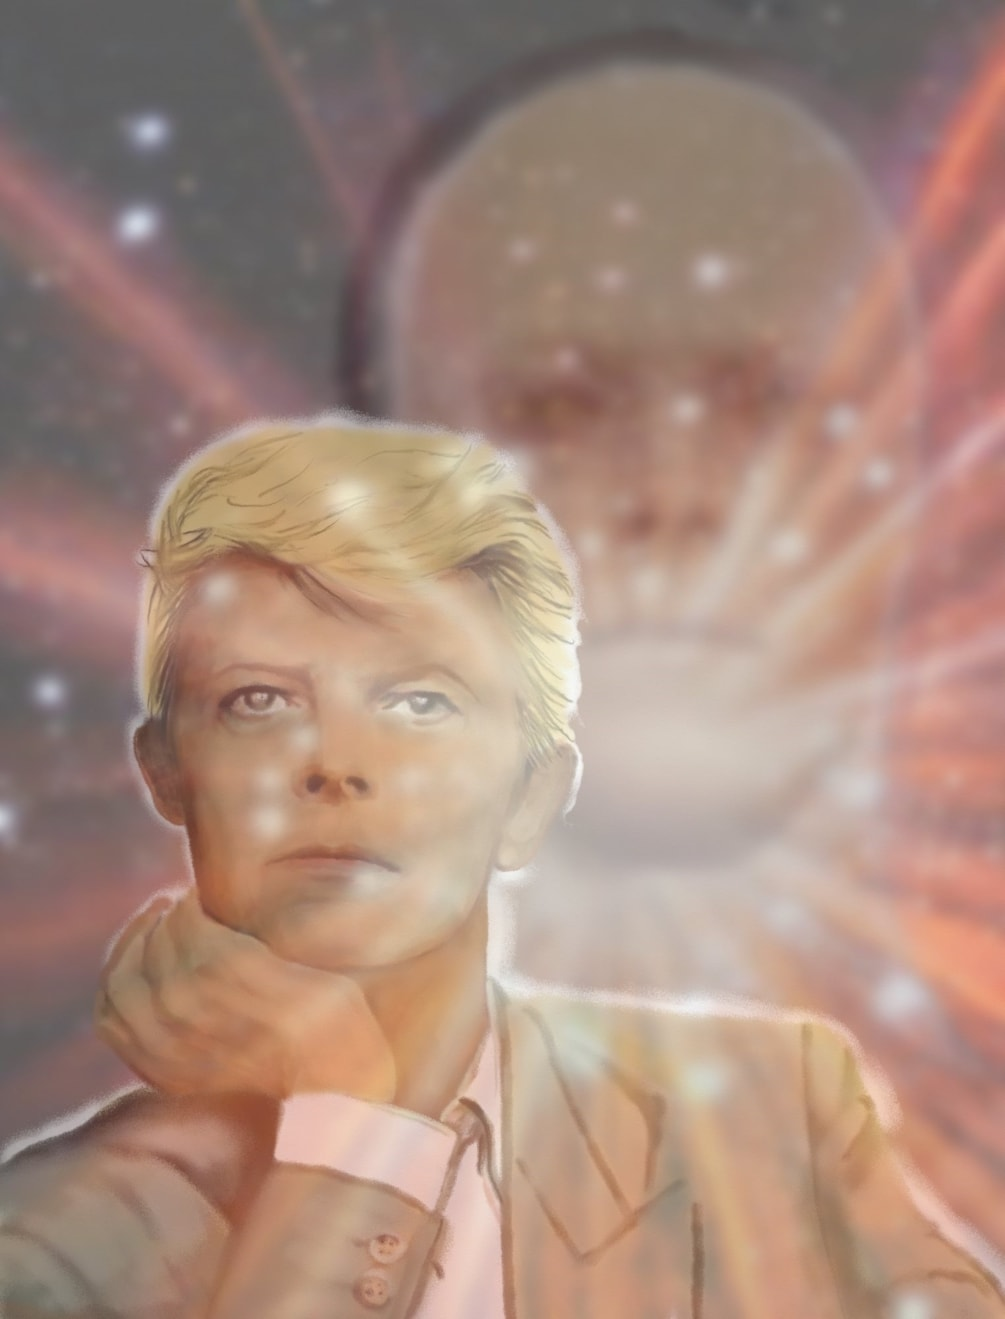 Ode to David Bowie